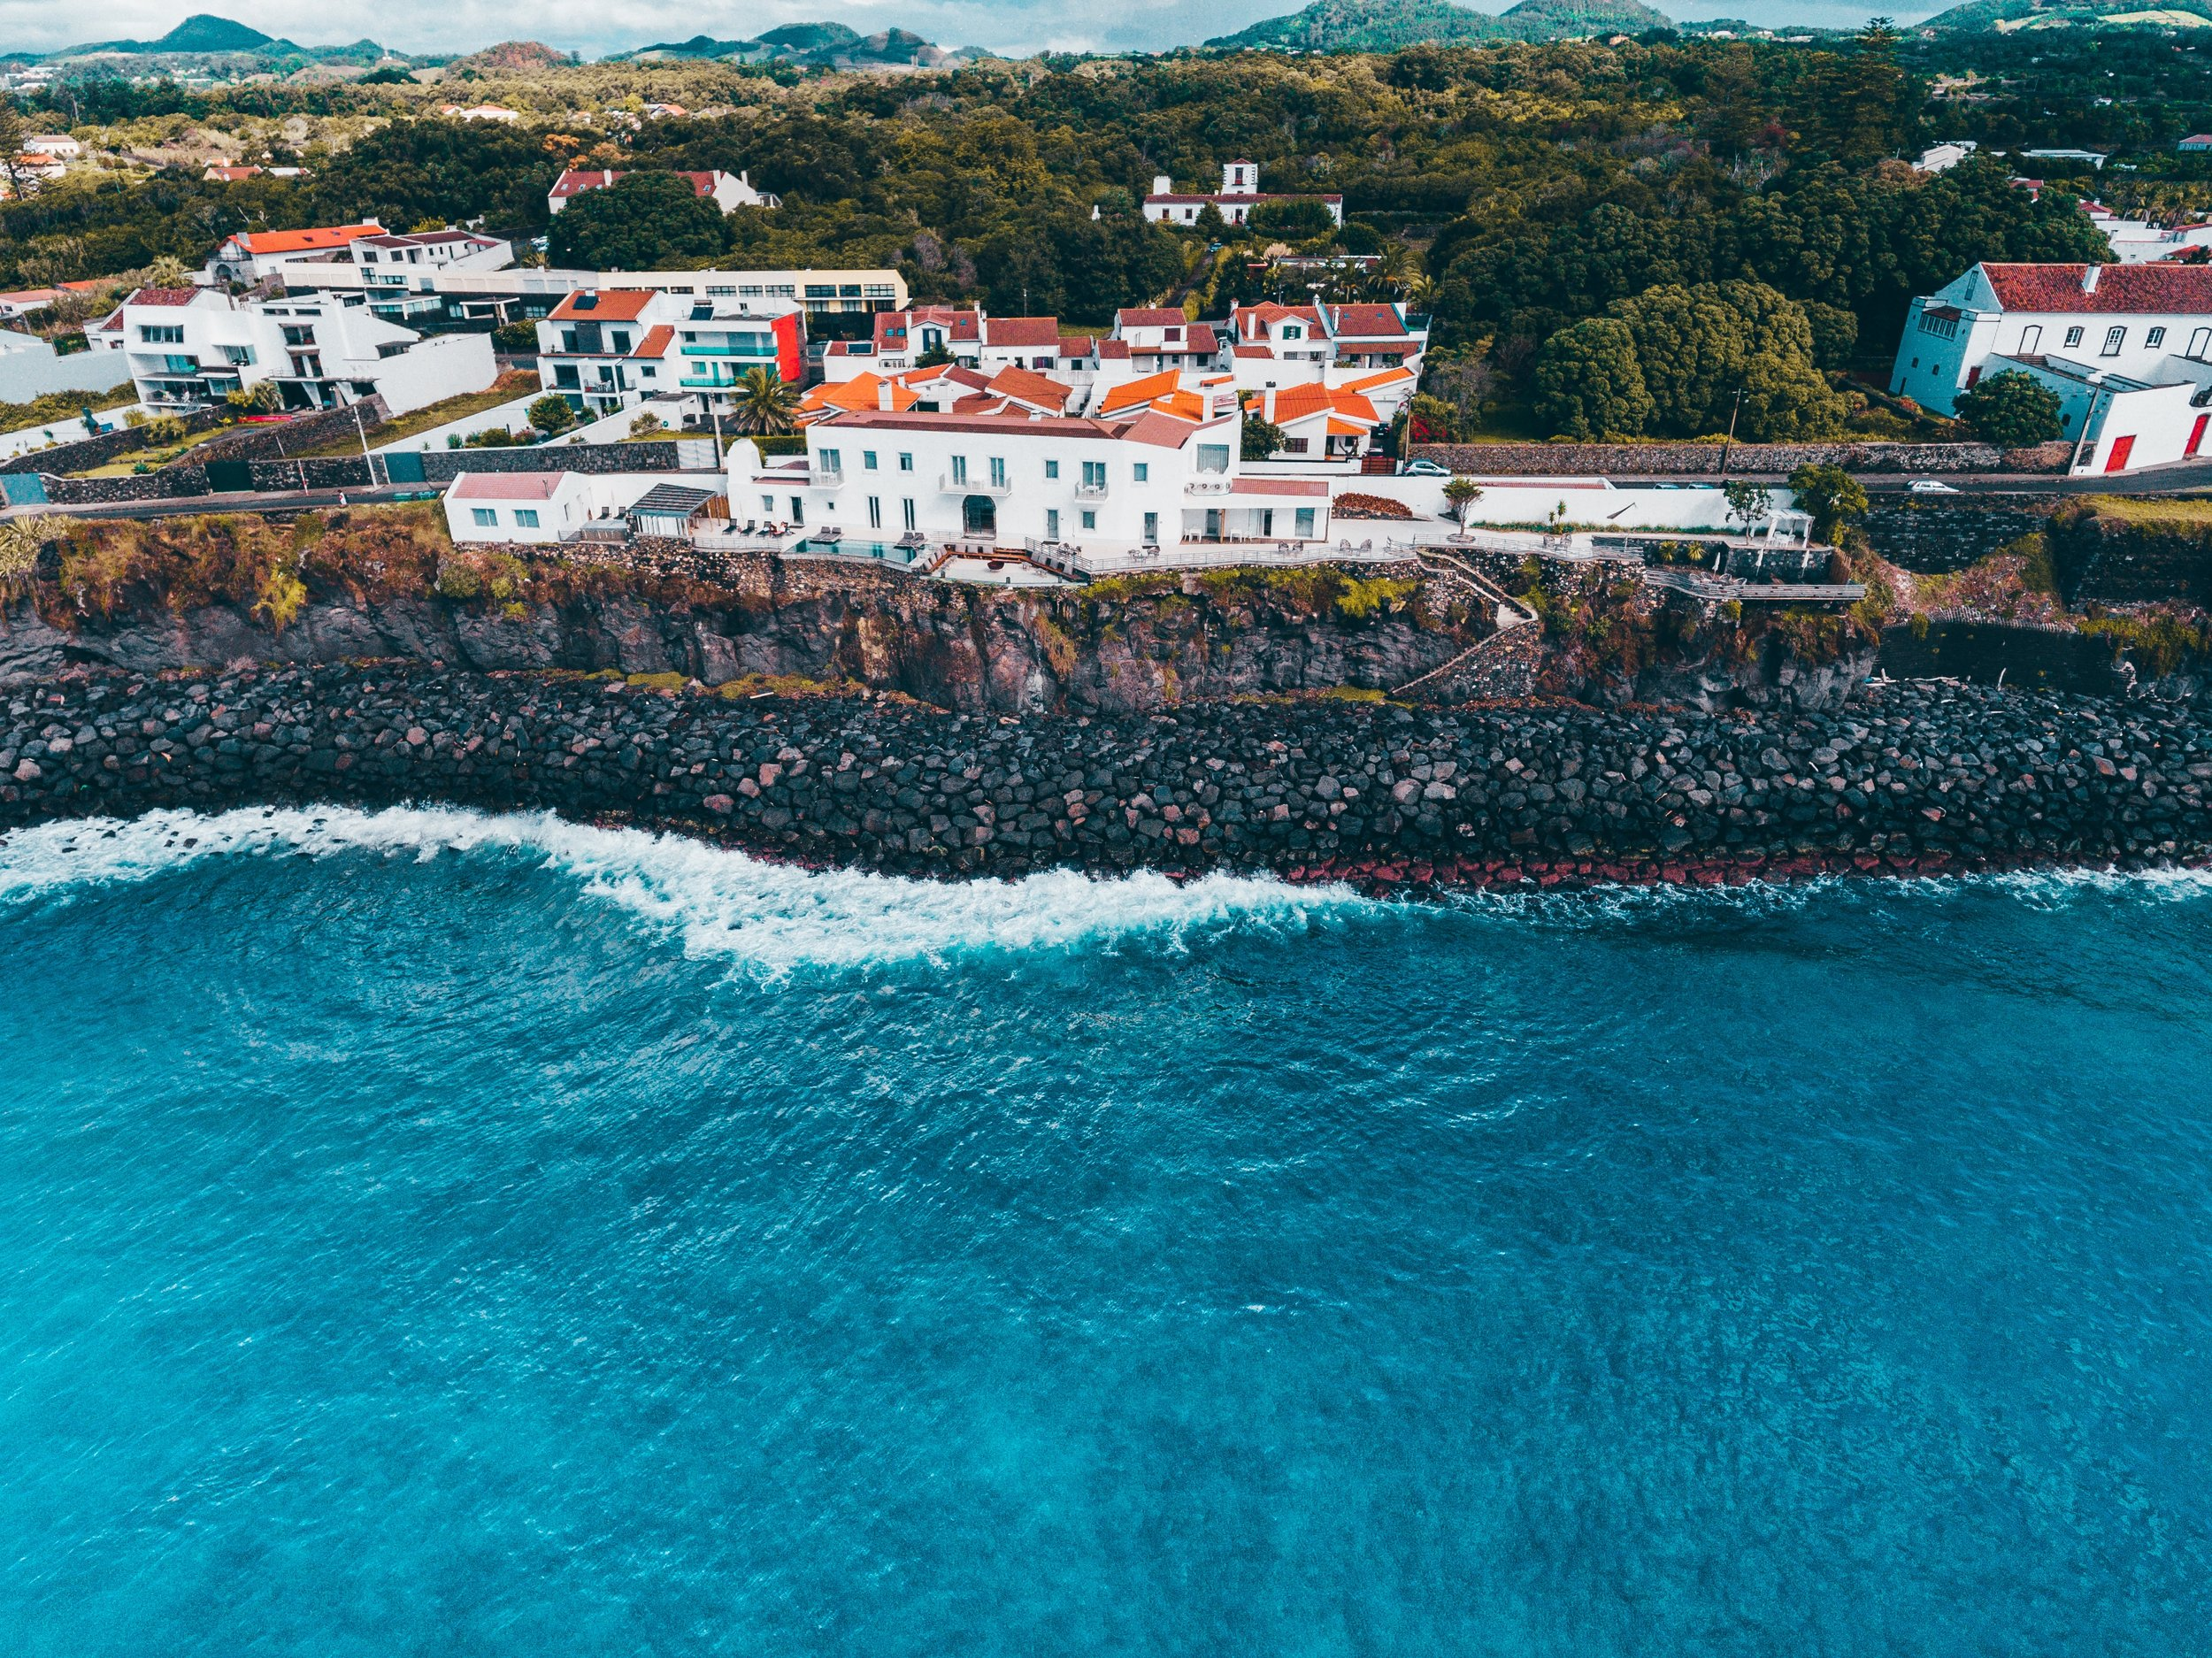 view of exclusive villas on the coast of ponta delgada in sao miguel azores portugal.jpg